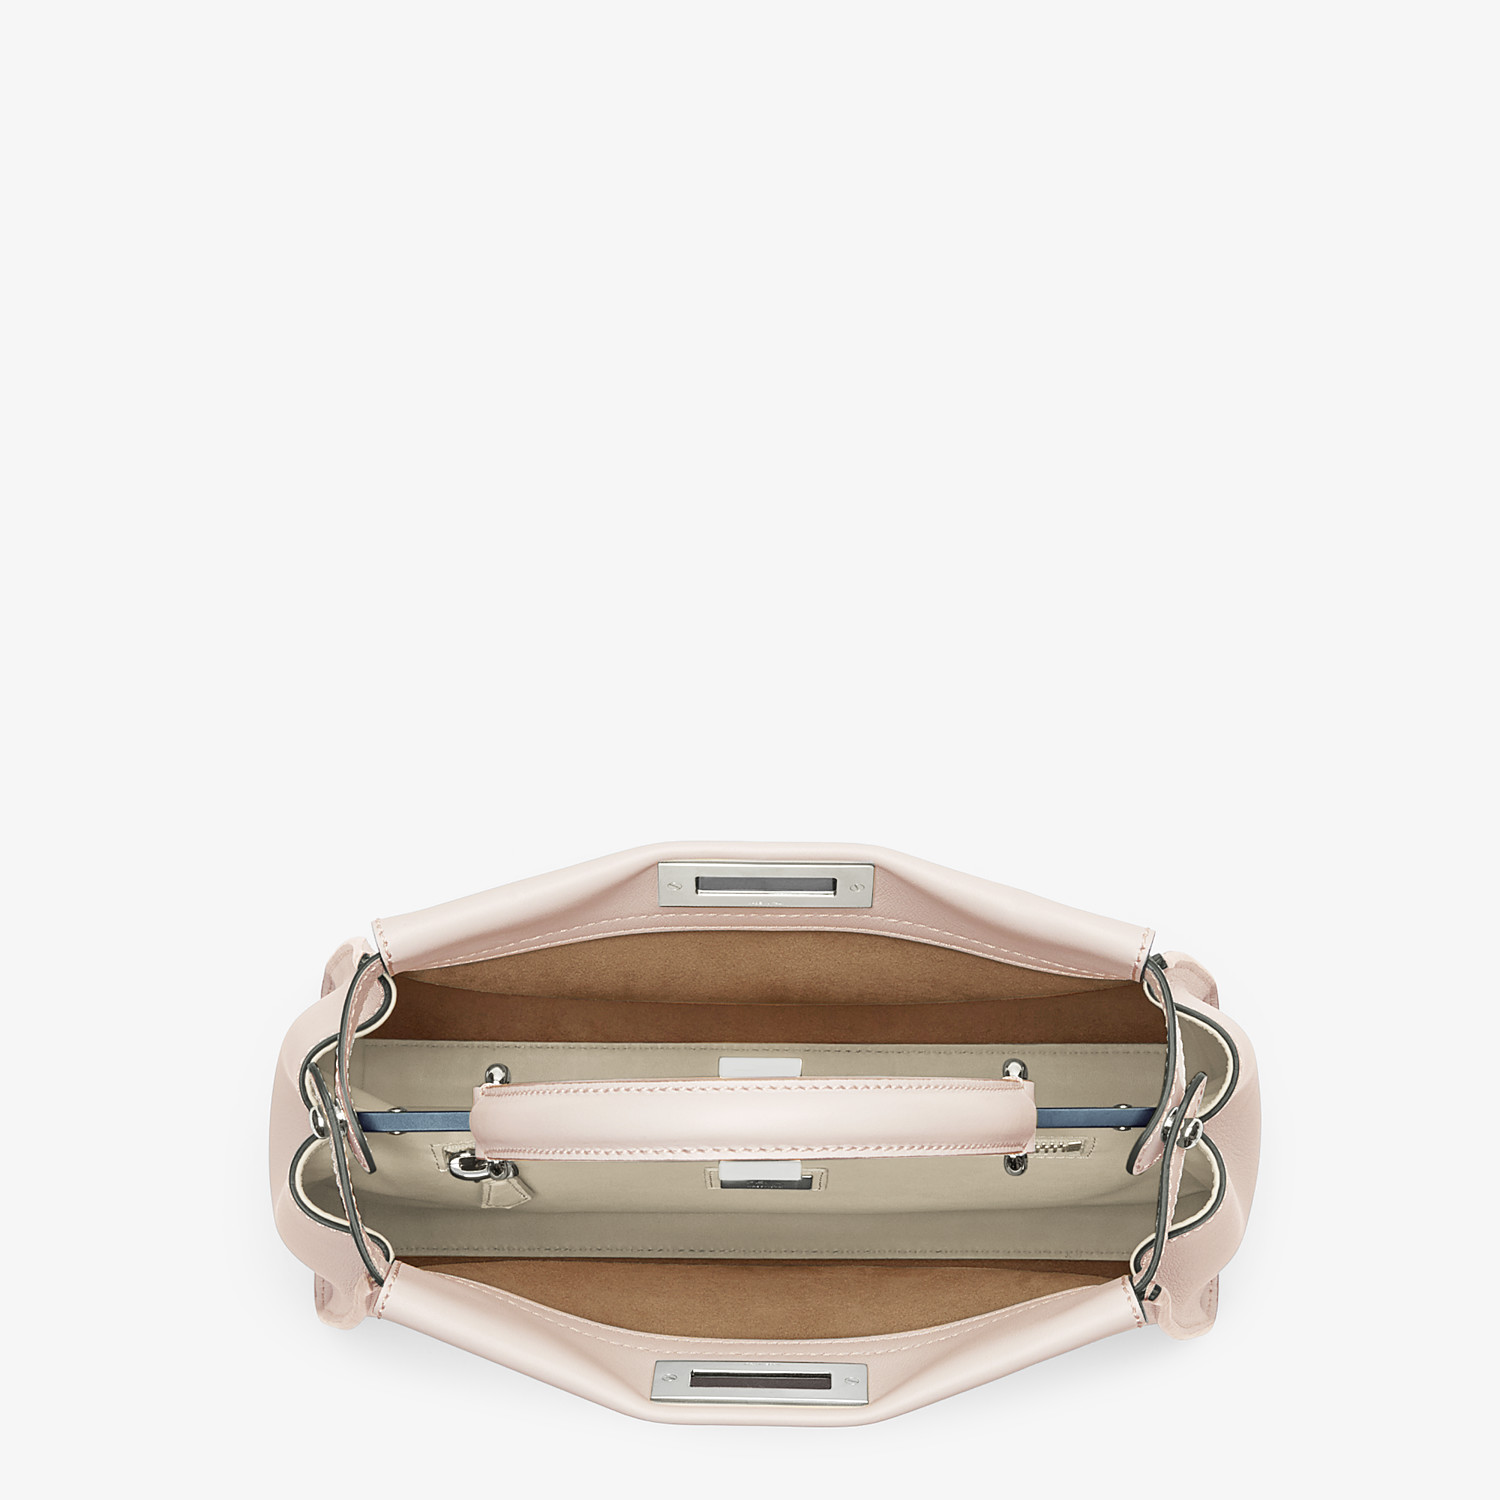 FENDI PEEKABOO ICONIC MEDIUM - Pink leather bag - view 4 detail